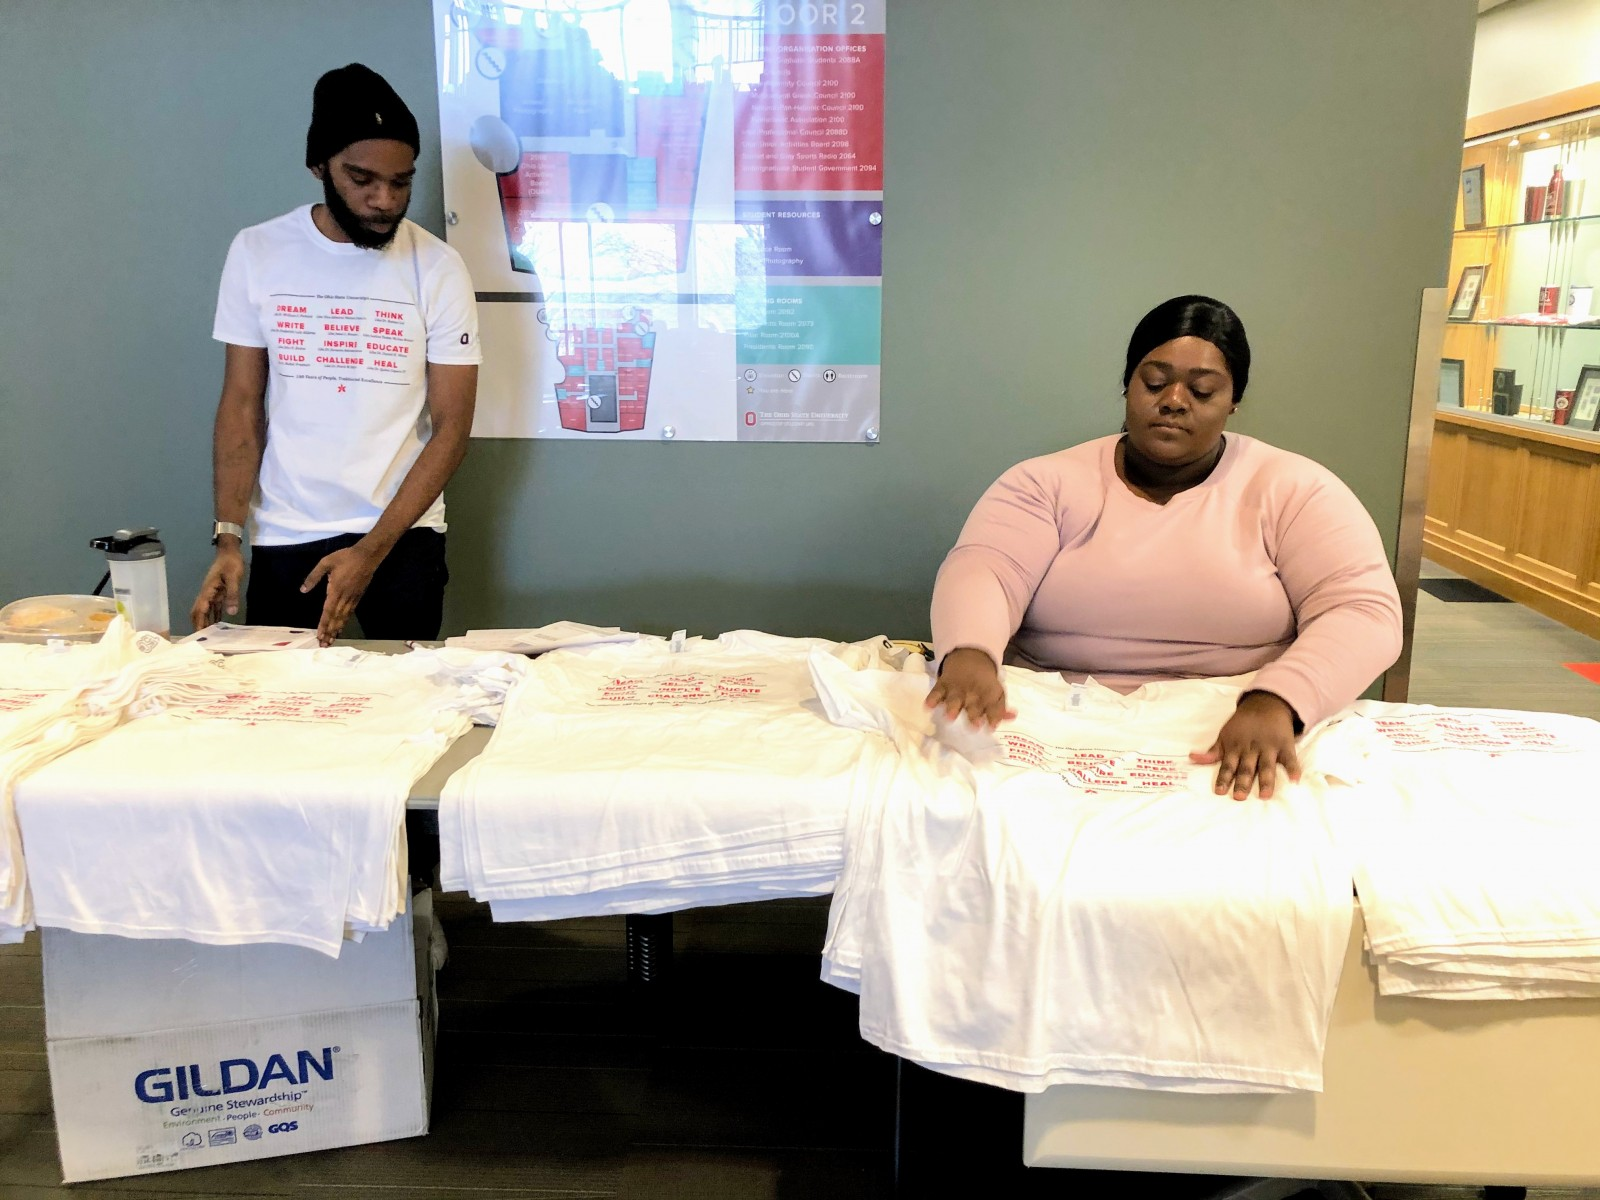 DaVonti' Haynes and Andrea Davis prepare T-shirts celebrating Ohio State's history of diversity